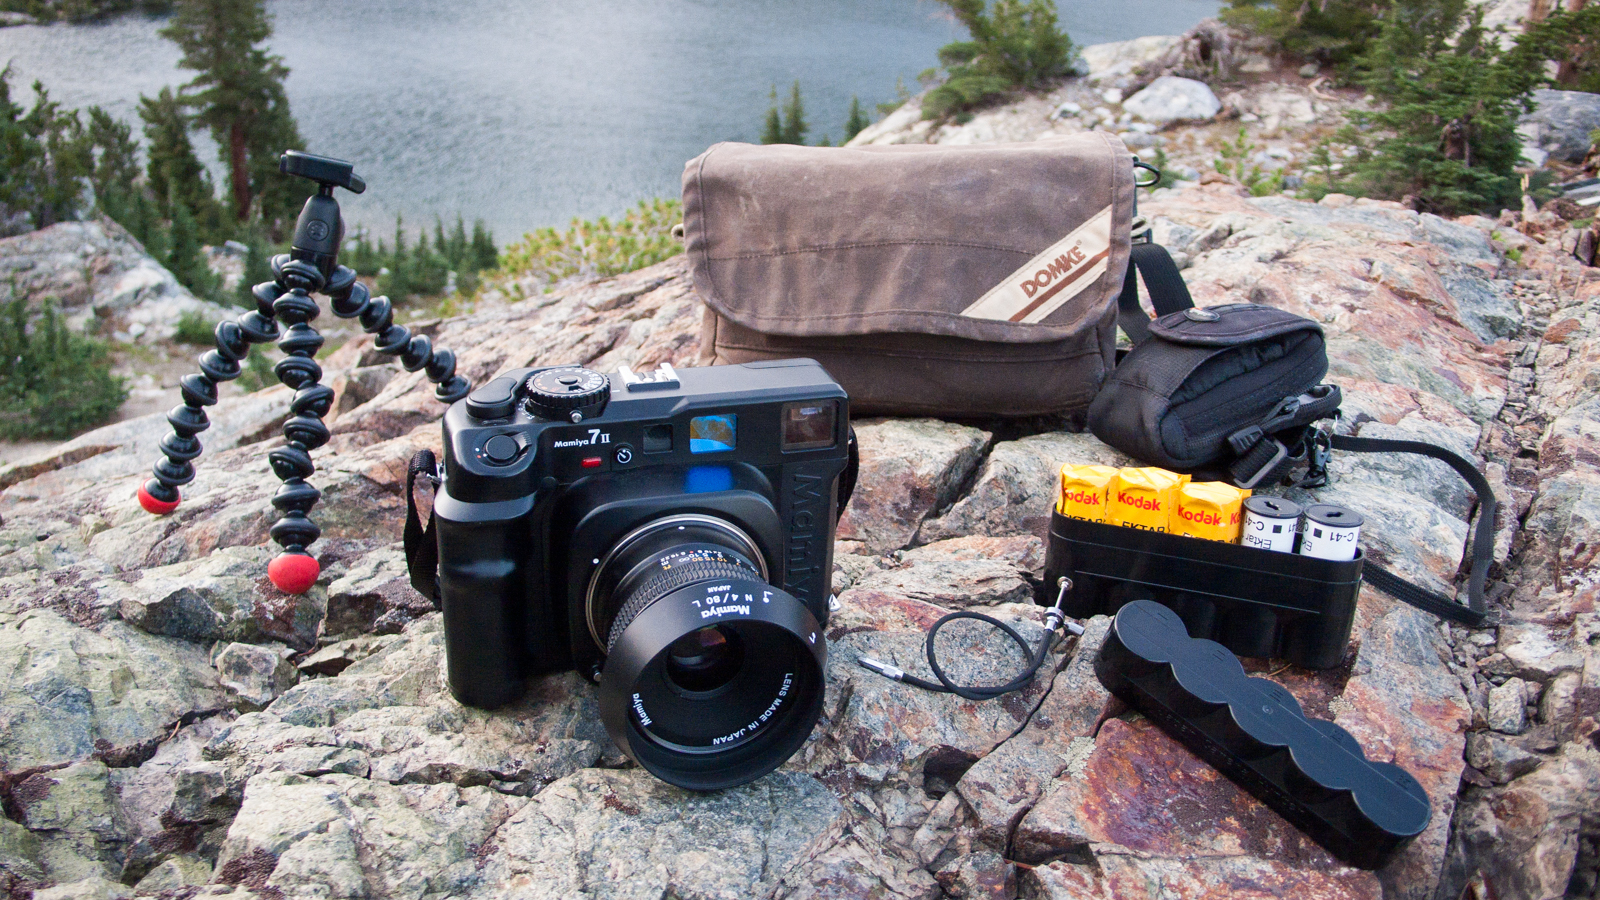 My Mamiya 7 posing on a rocky ledge above Minaret Lake, in the Ansel Adams Wilderness.